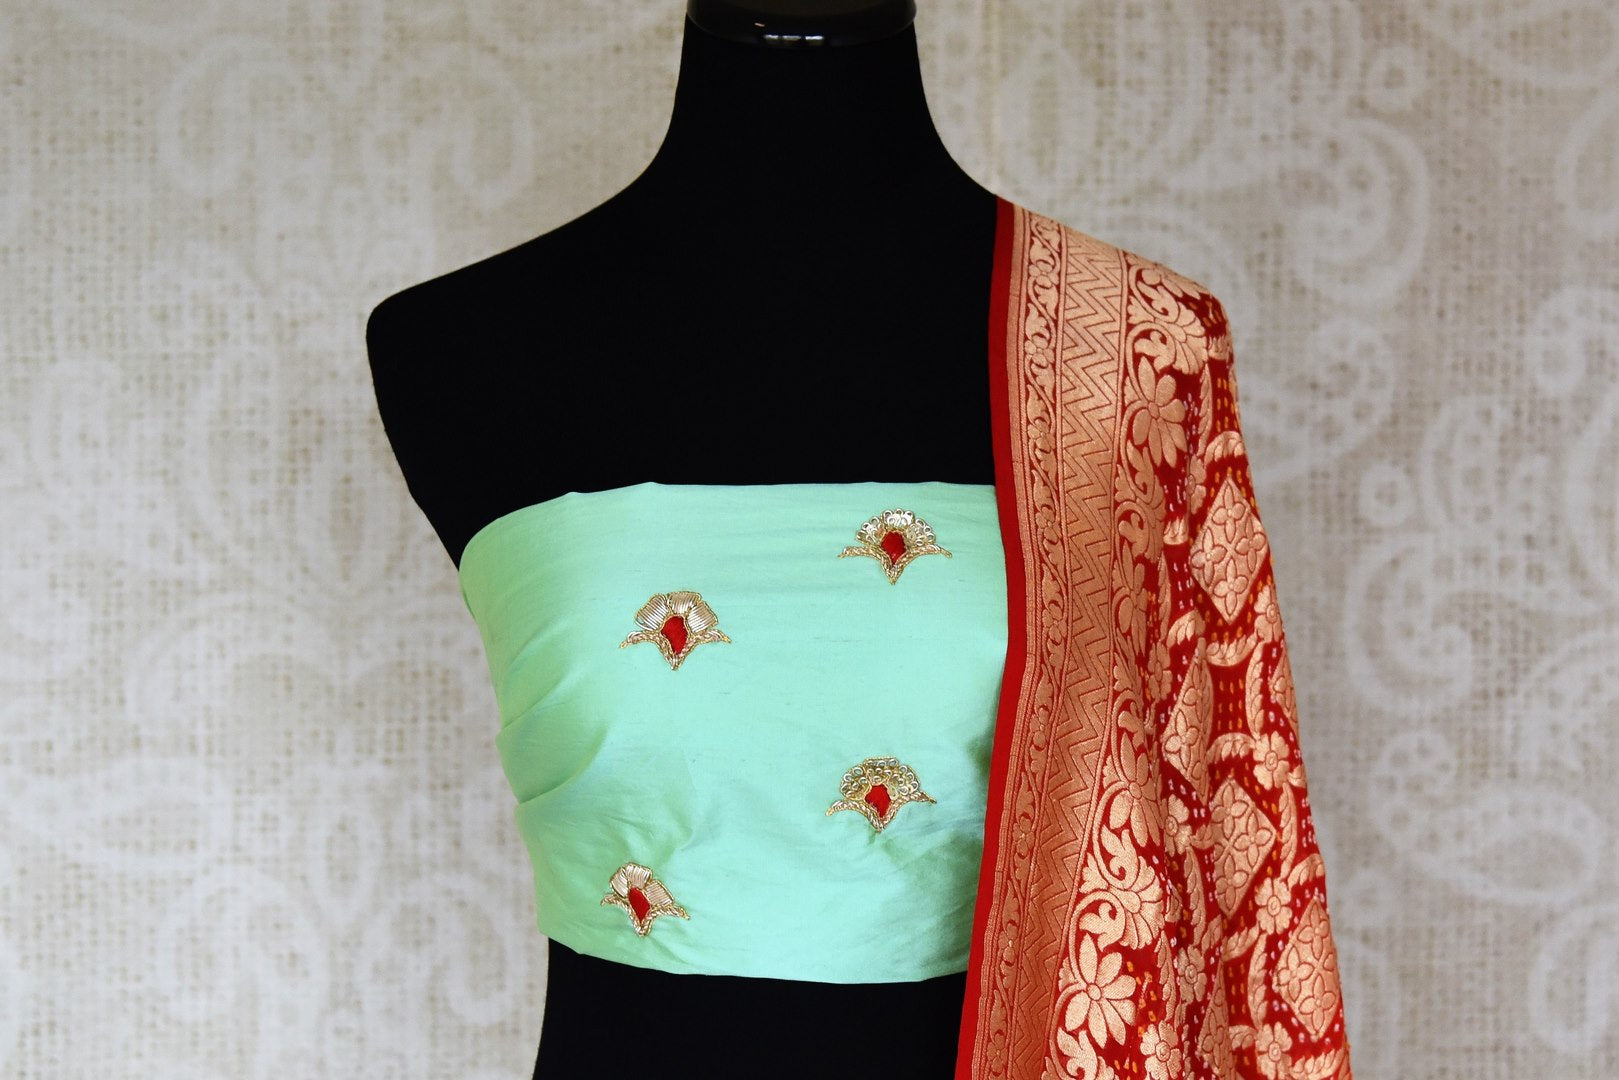 Buy green raw silk lehenga online in USA with gota patti work and red dupatta. Make fashionable choices with latest Indian designer clothing from Pure Elegance Indian fashion store in USA. Shop Indian salwar suits, designer Anarkali suits and bridal lehengas for Indian brides in USA from our online store.-blouse